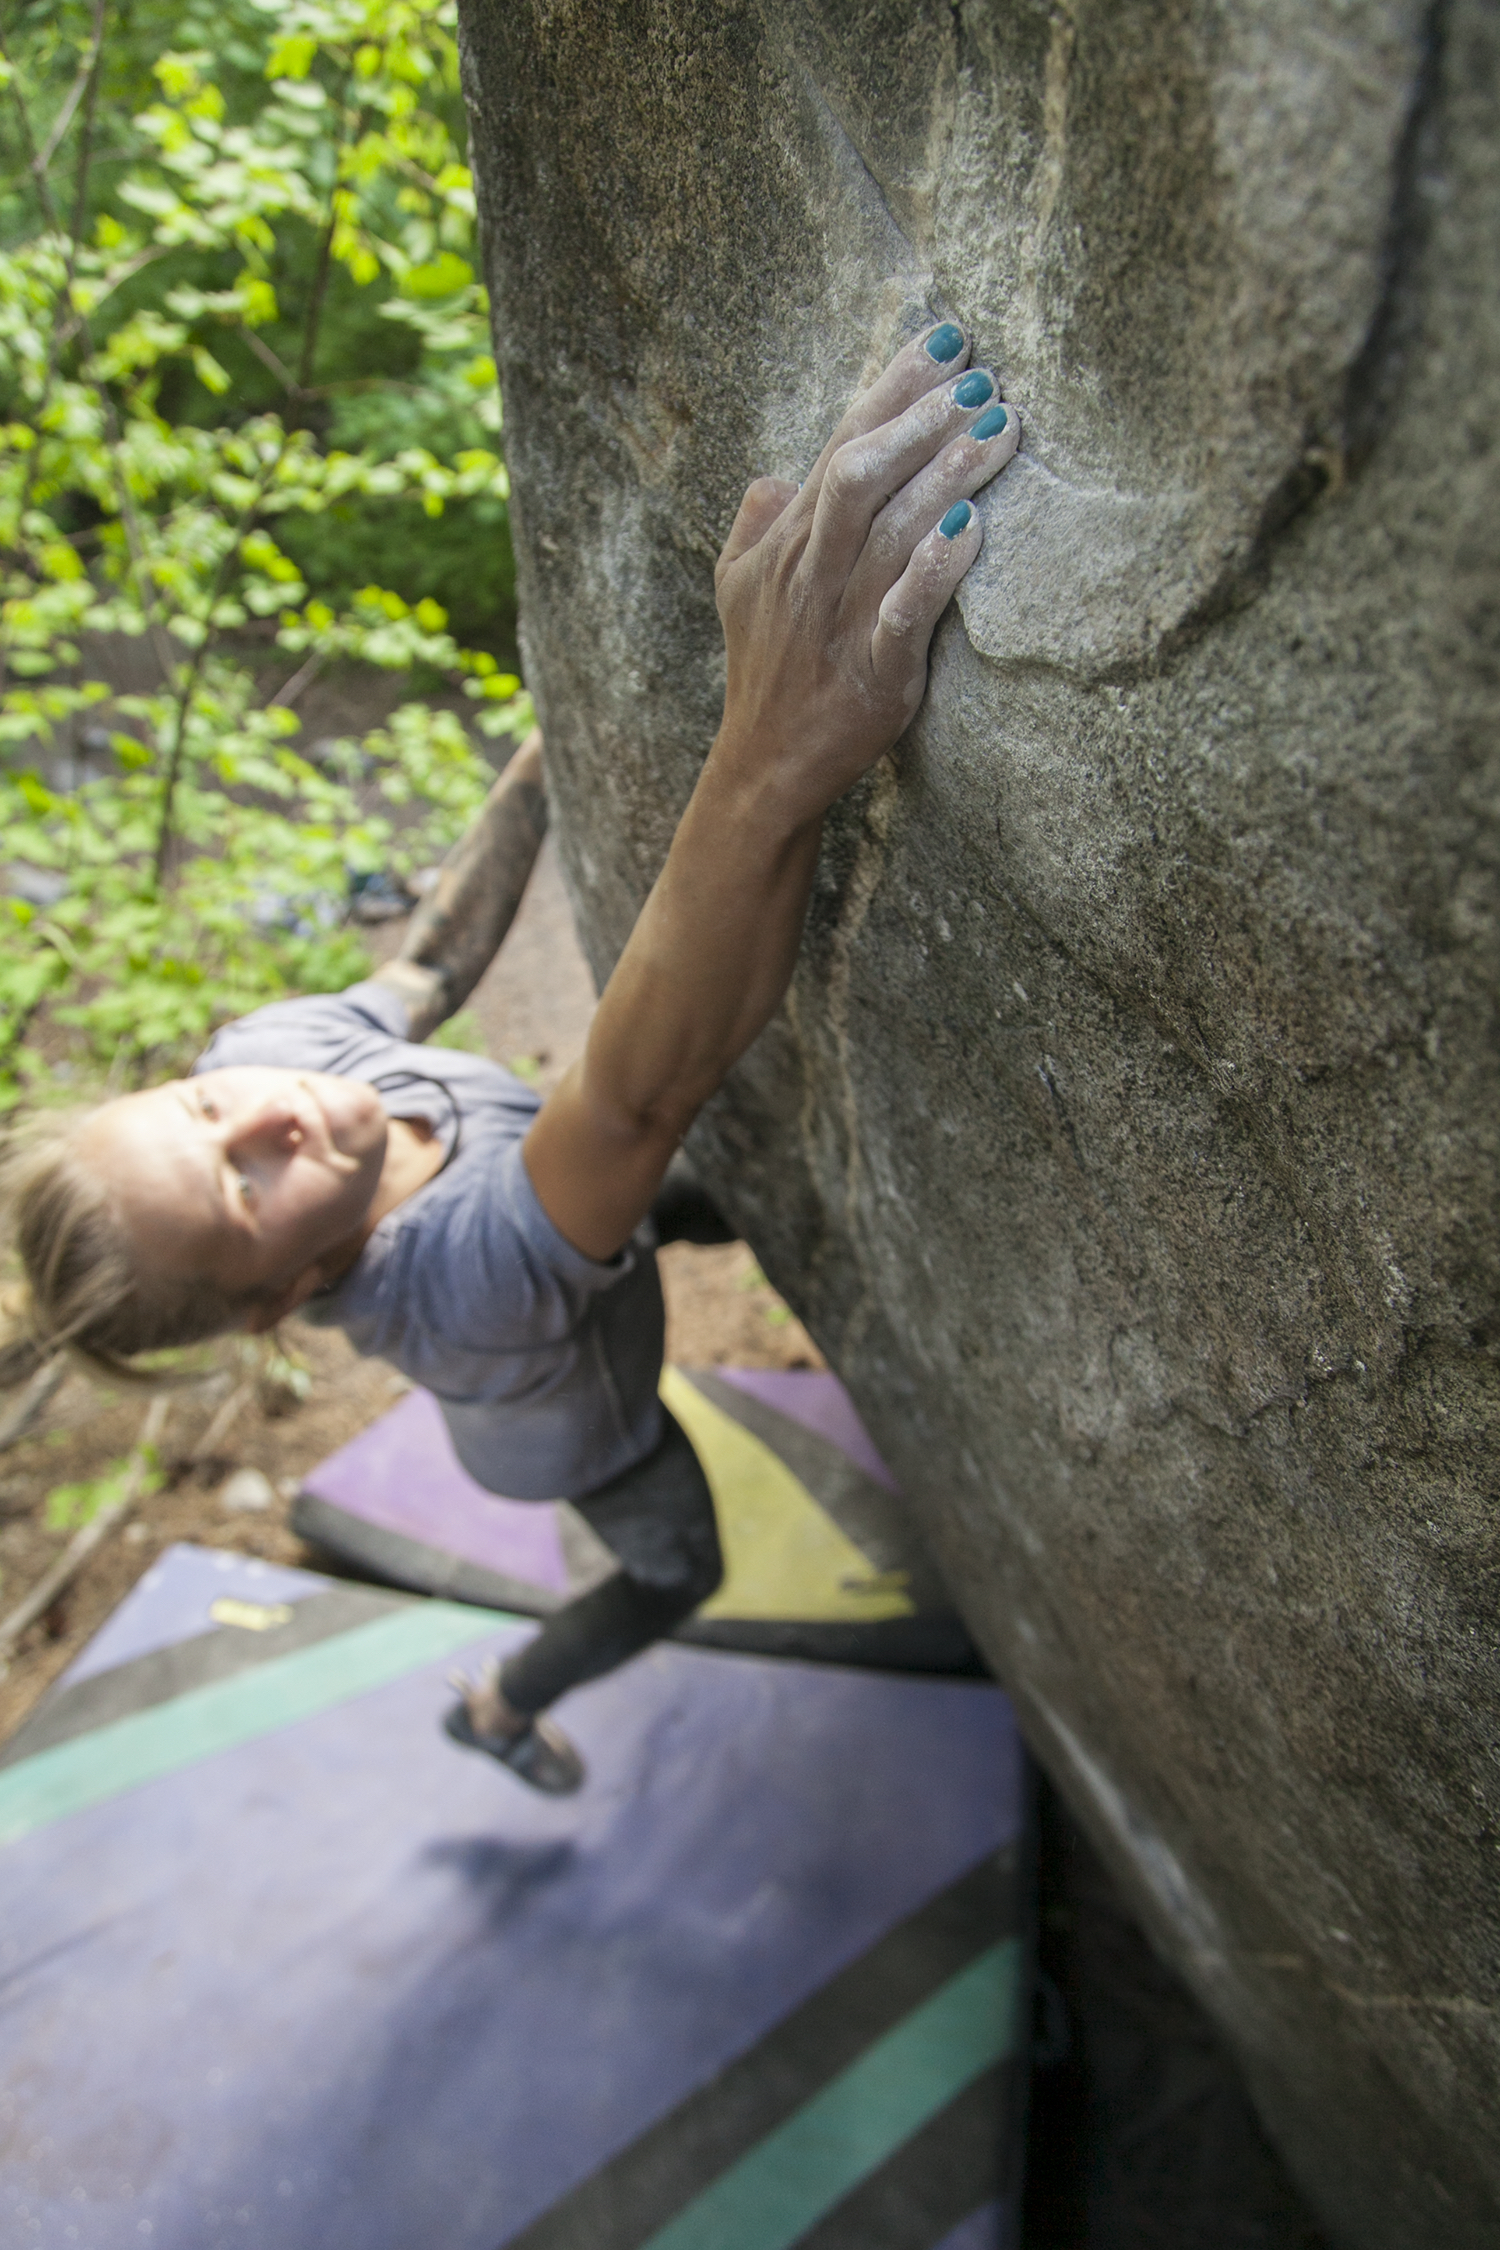 Nails looking fly on Cole's Corner (v8) in Leavenworth, WA. photo by Jeremy Bini.